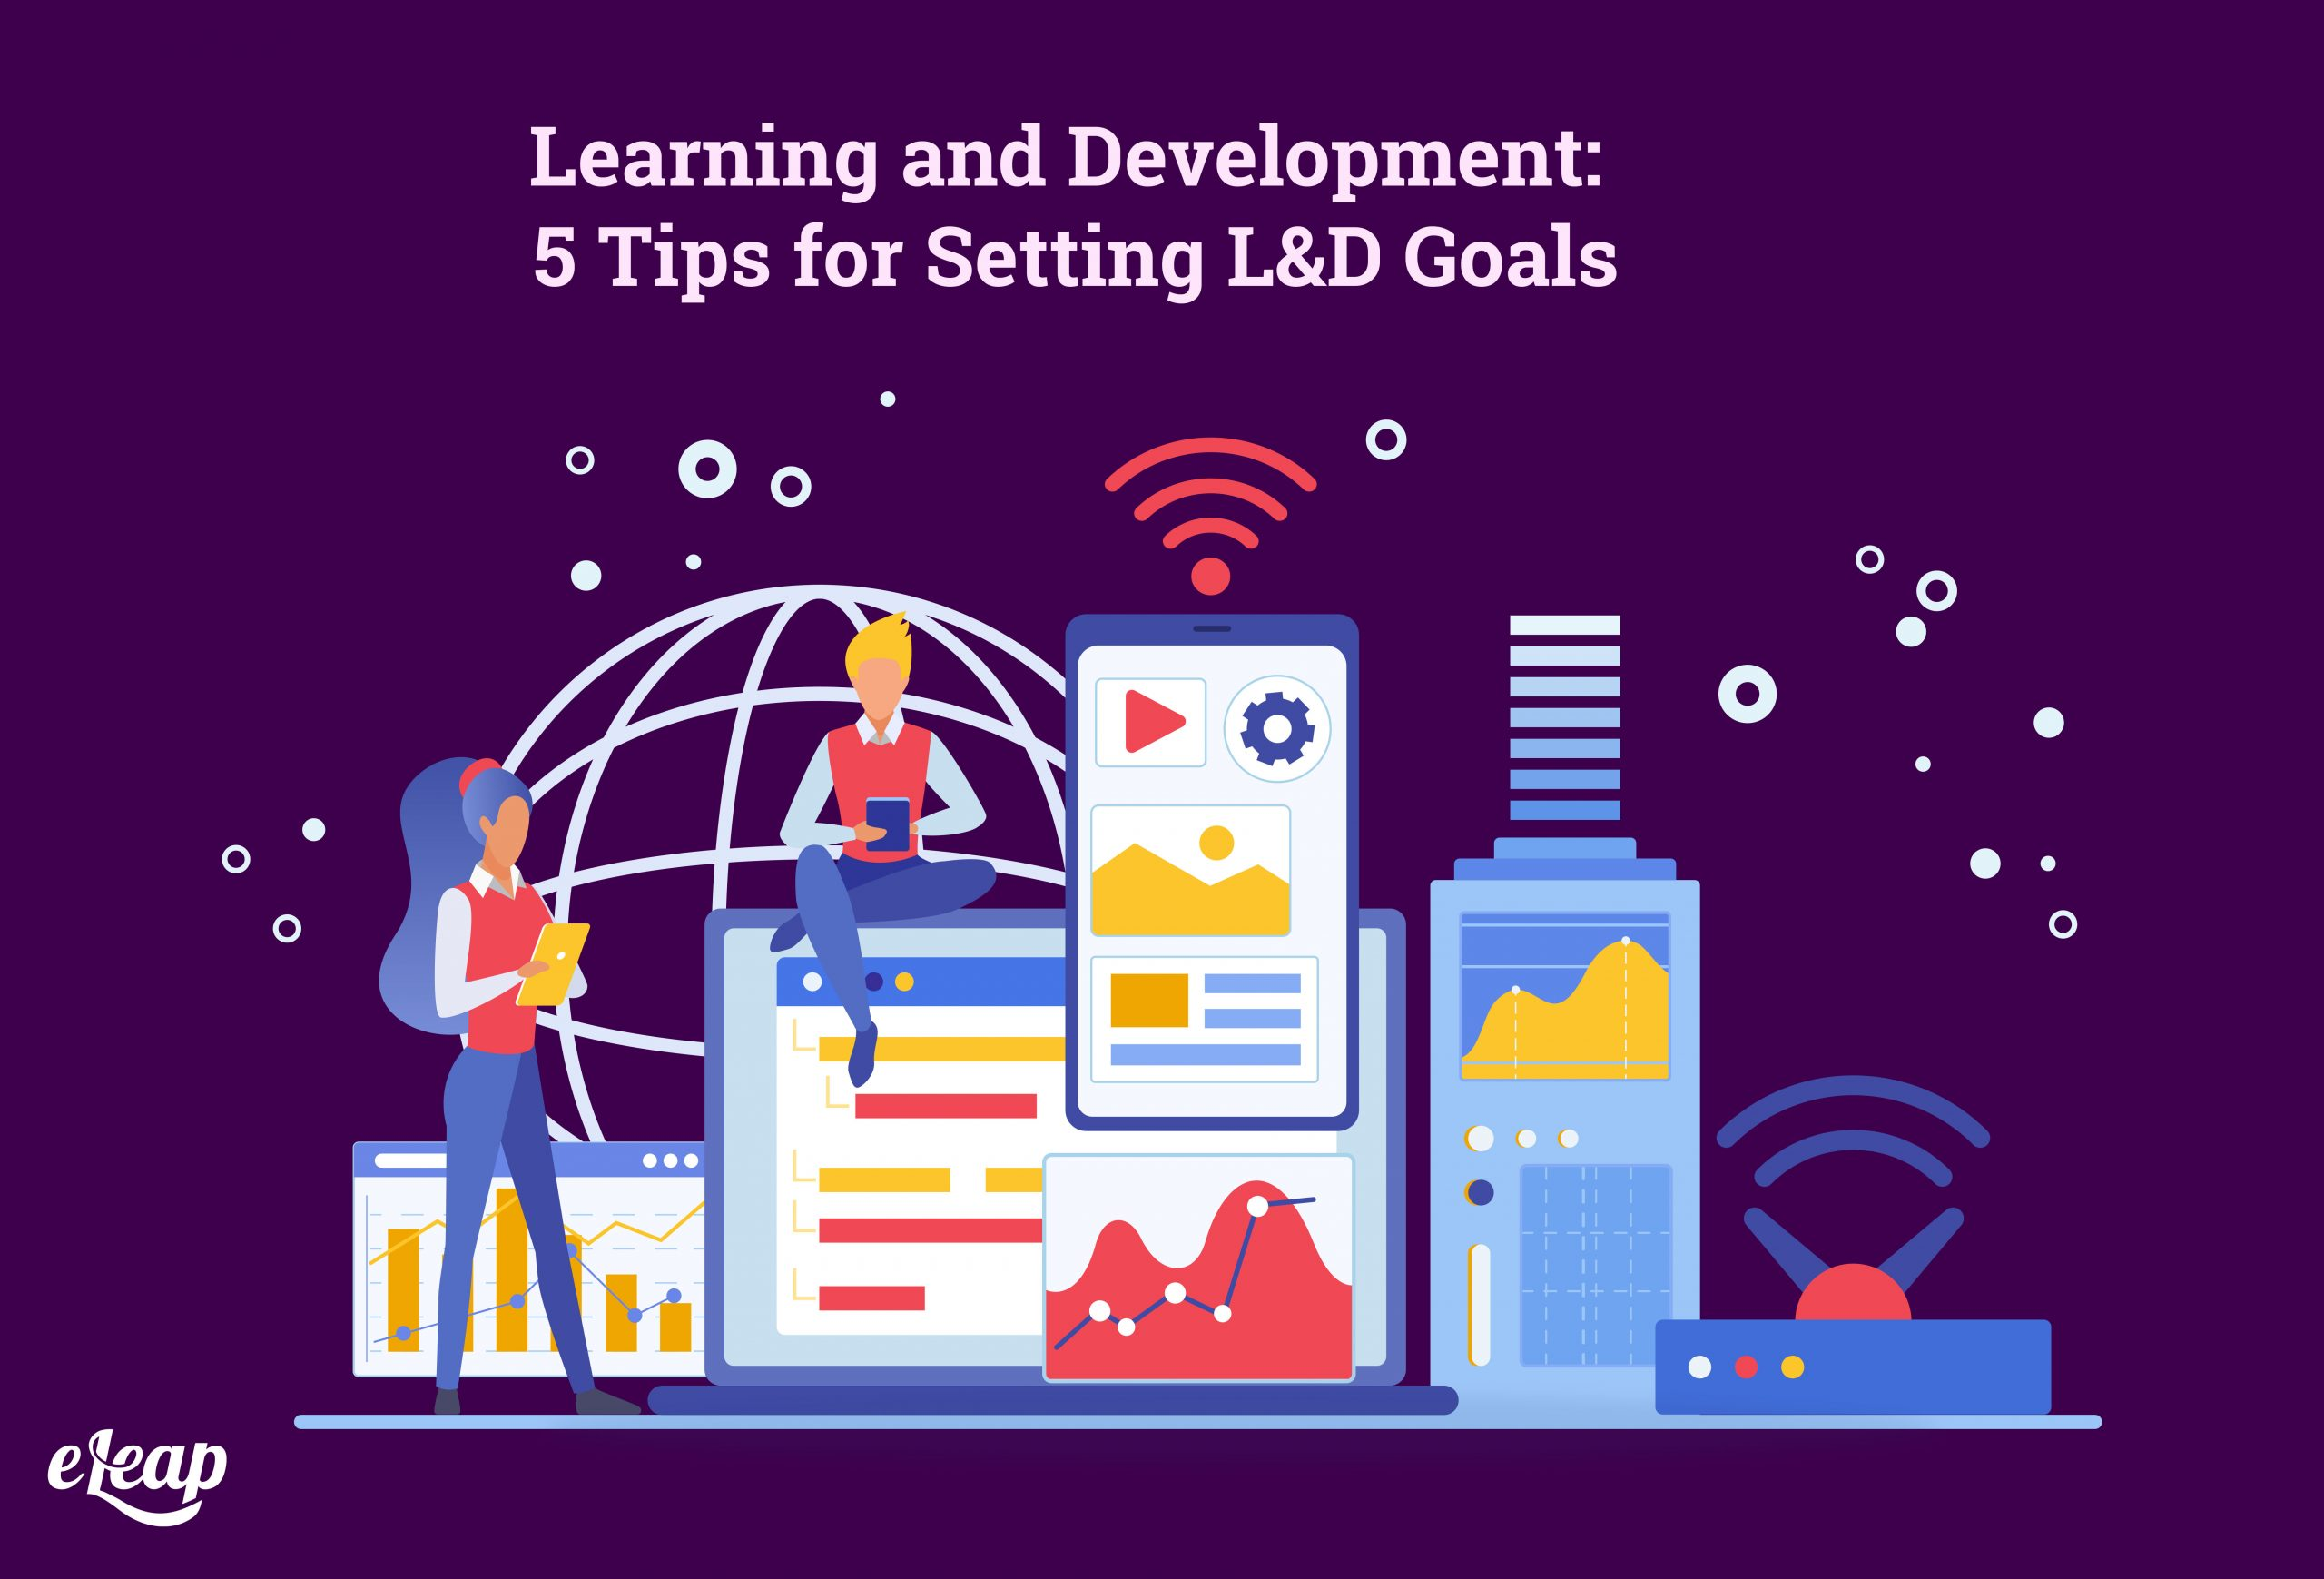 Learning and Development: 5 Tips for Setting L&D Goals